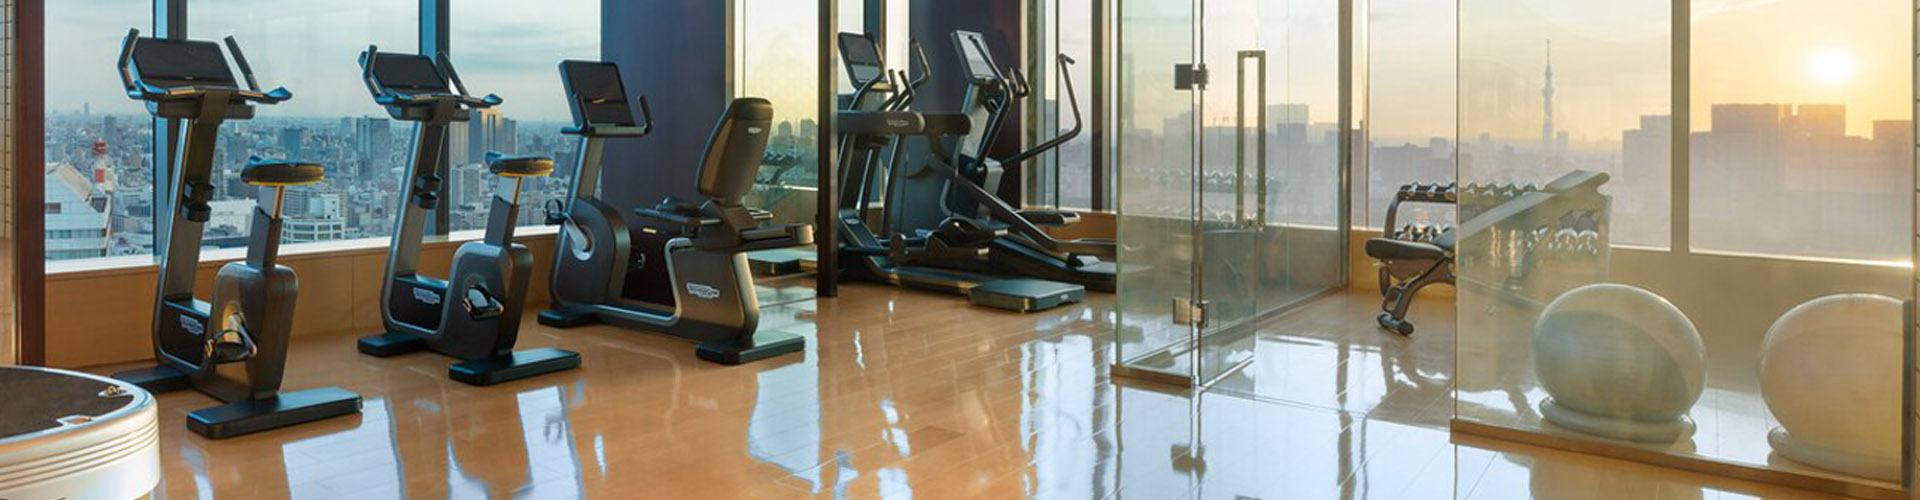 The Prince Gallery Tokyo Kioicho: a state-of-art in room experience with Technogym Case